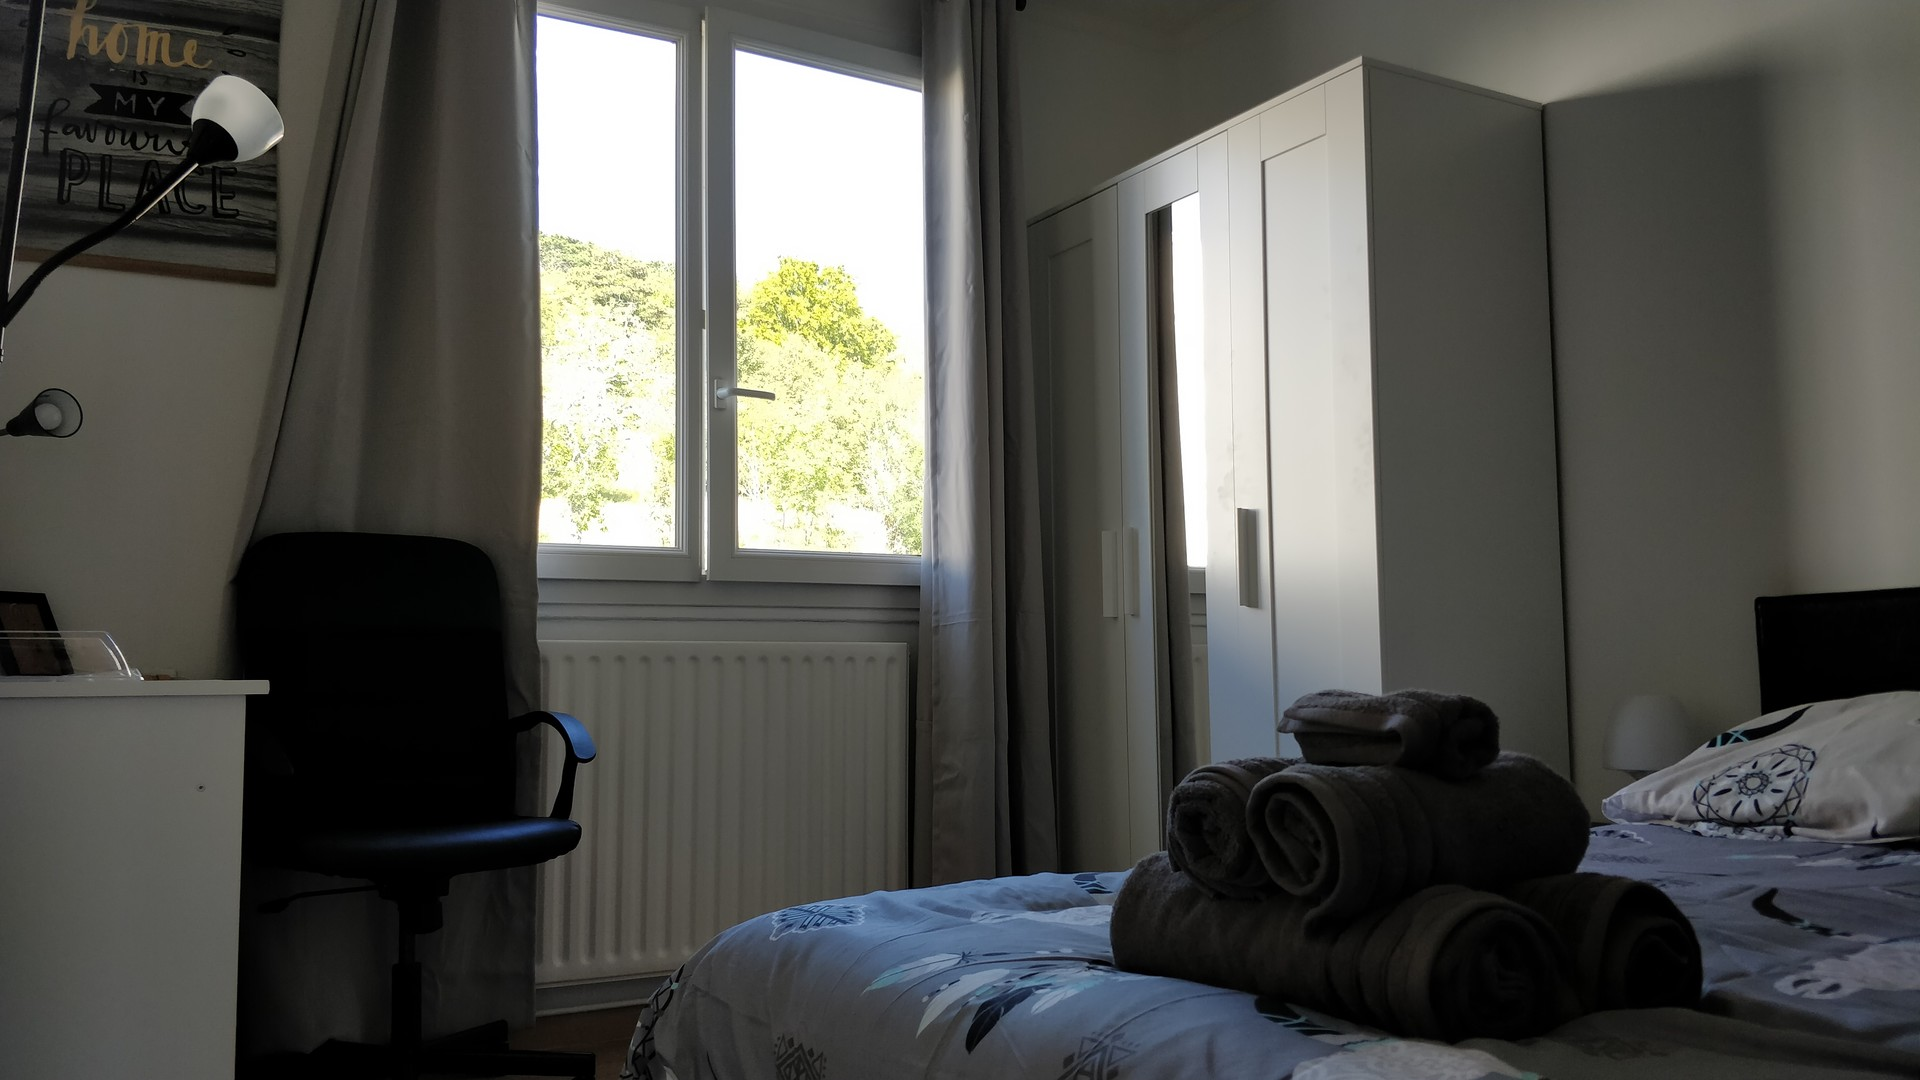 Les 4 Pieds Rouen room for rent in 4-bedroom shared apartment in rouen with